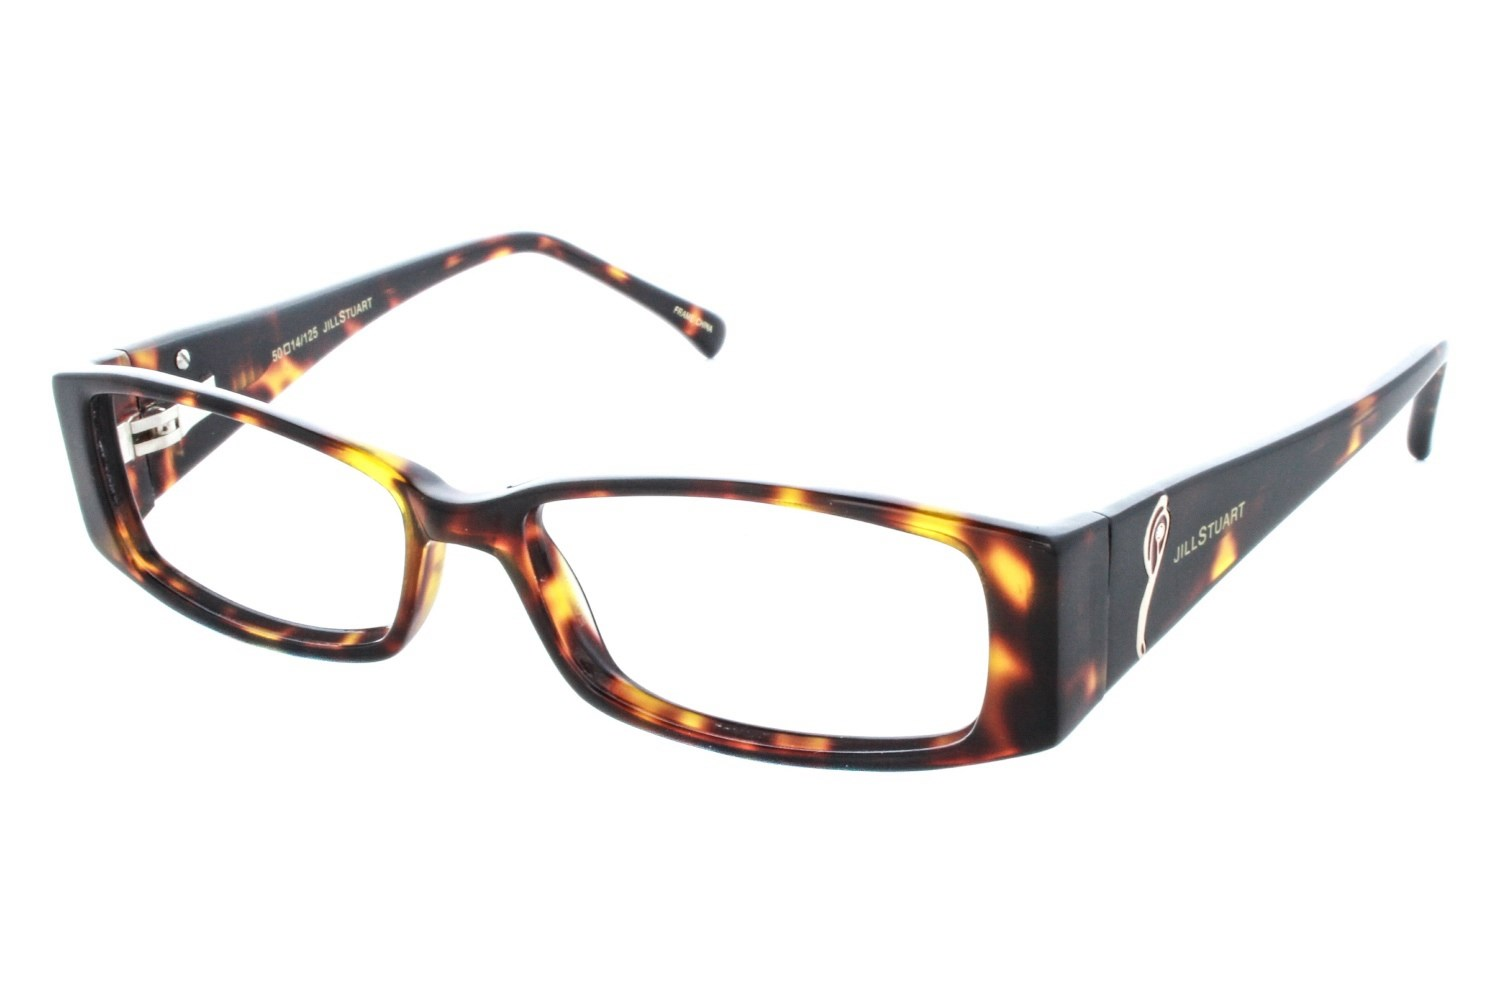 Jill Stuart JS 292 Prescription Eyeglasses Frames